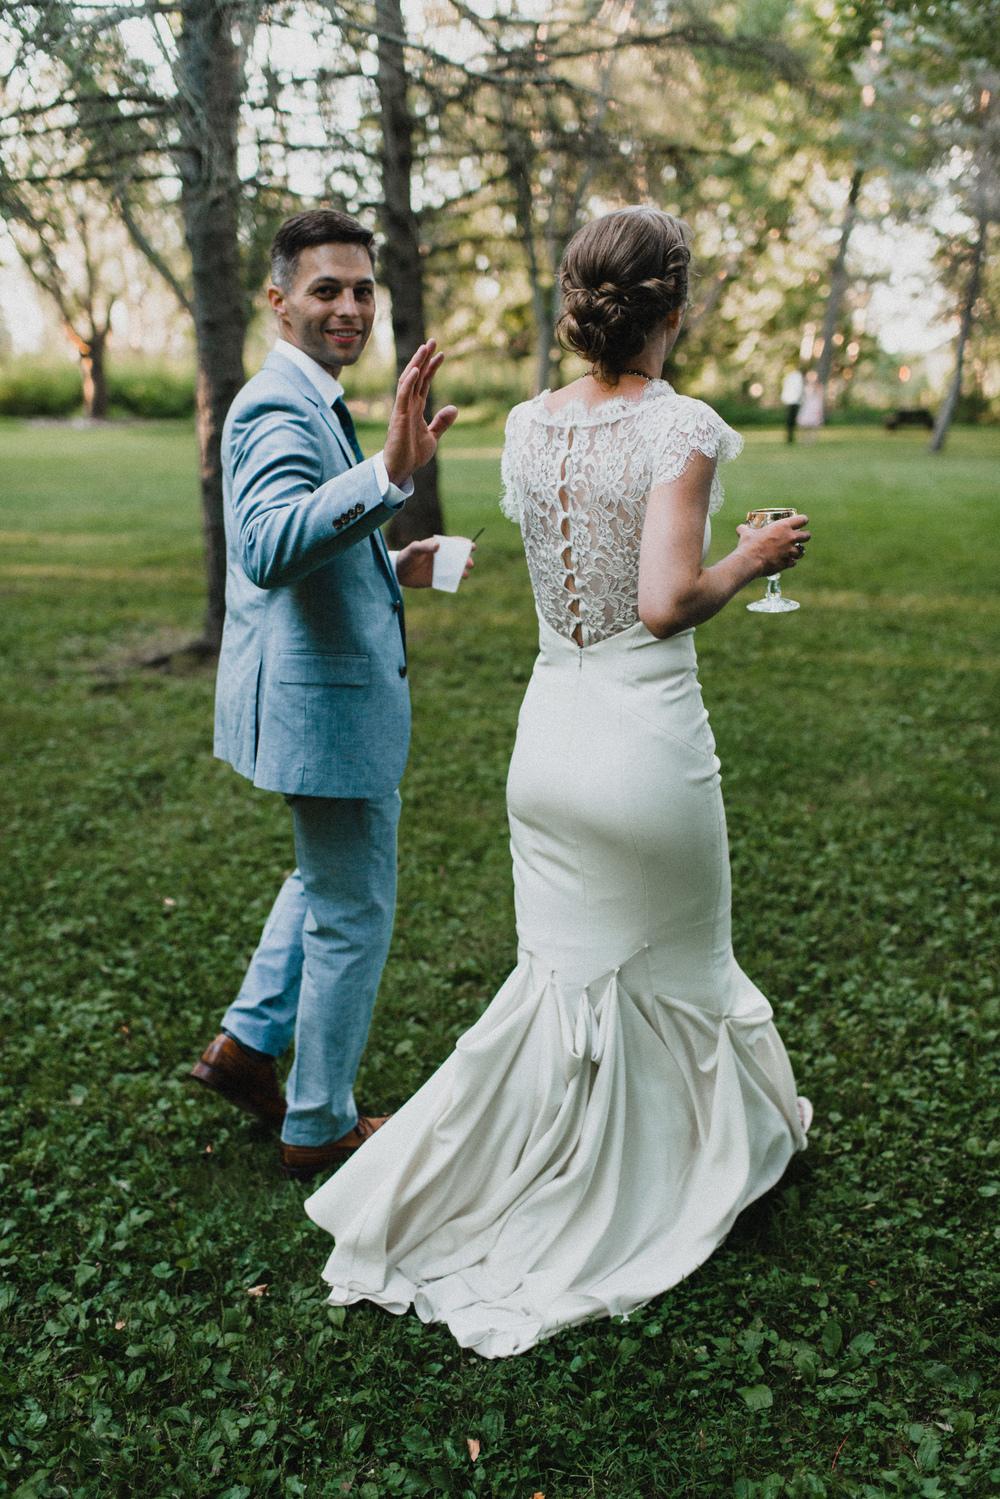 Intimate-Backyard-Farmhouse-Ohio-Wedding-Andi+Ben_Mallory+Justin-Photographers-238.JPG